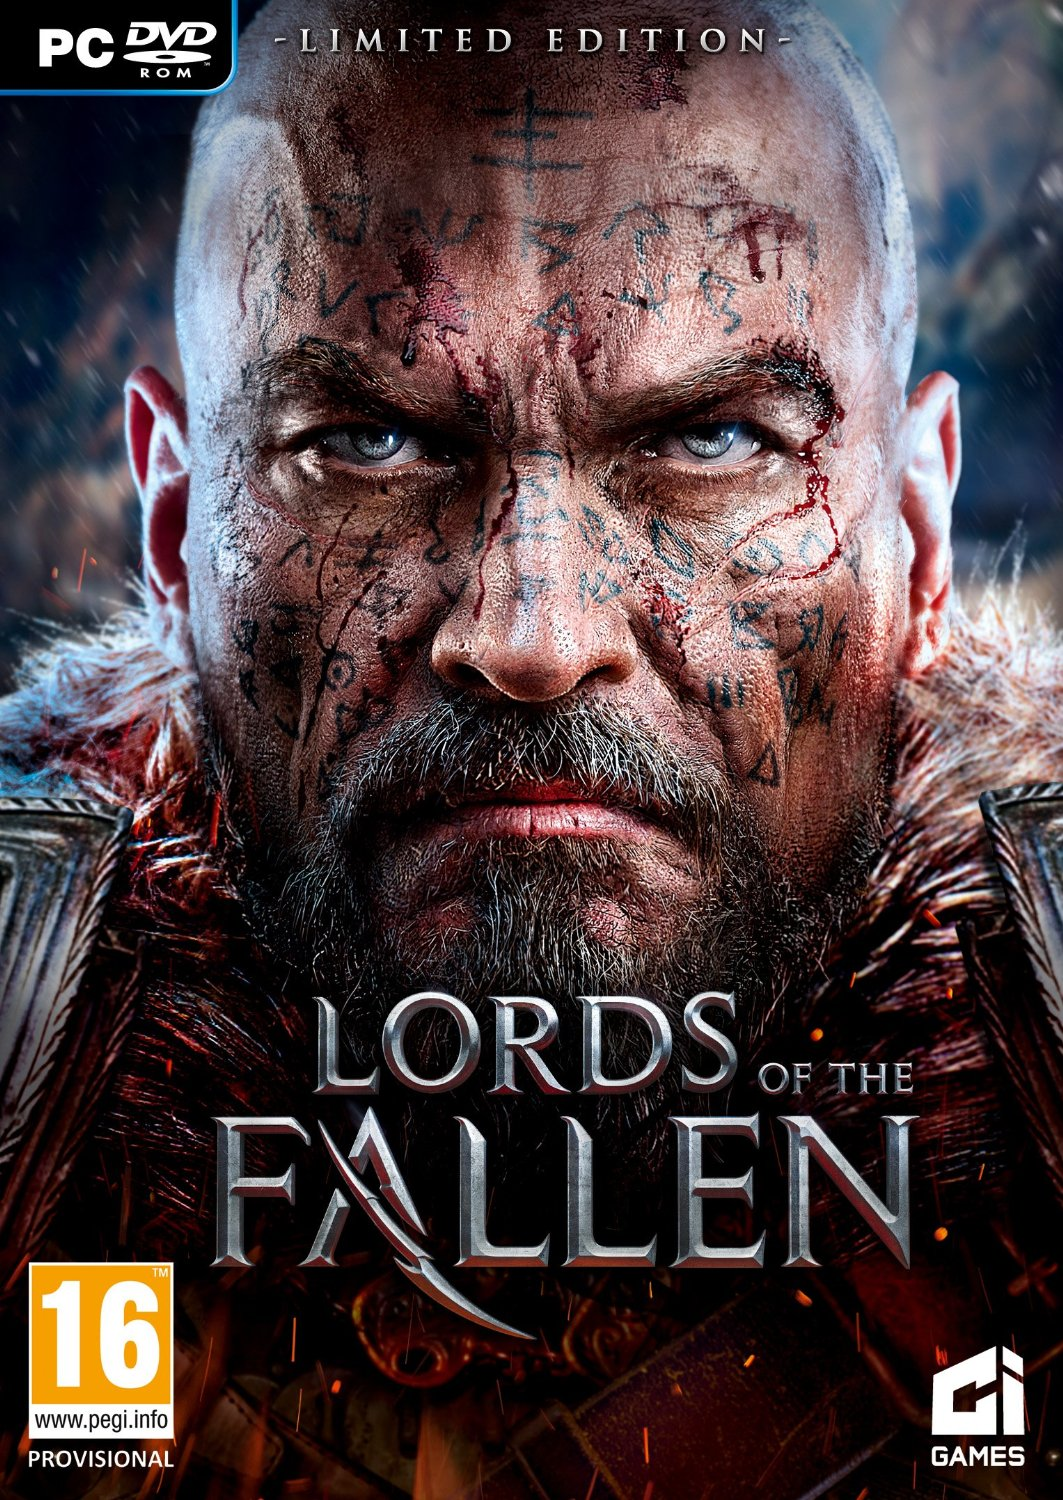 Lords Of The Fallen ESPAÑOL PC Full Cover Caratula